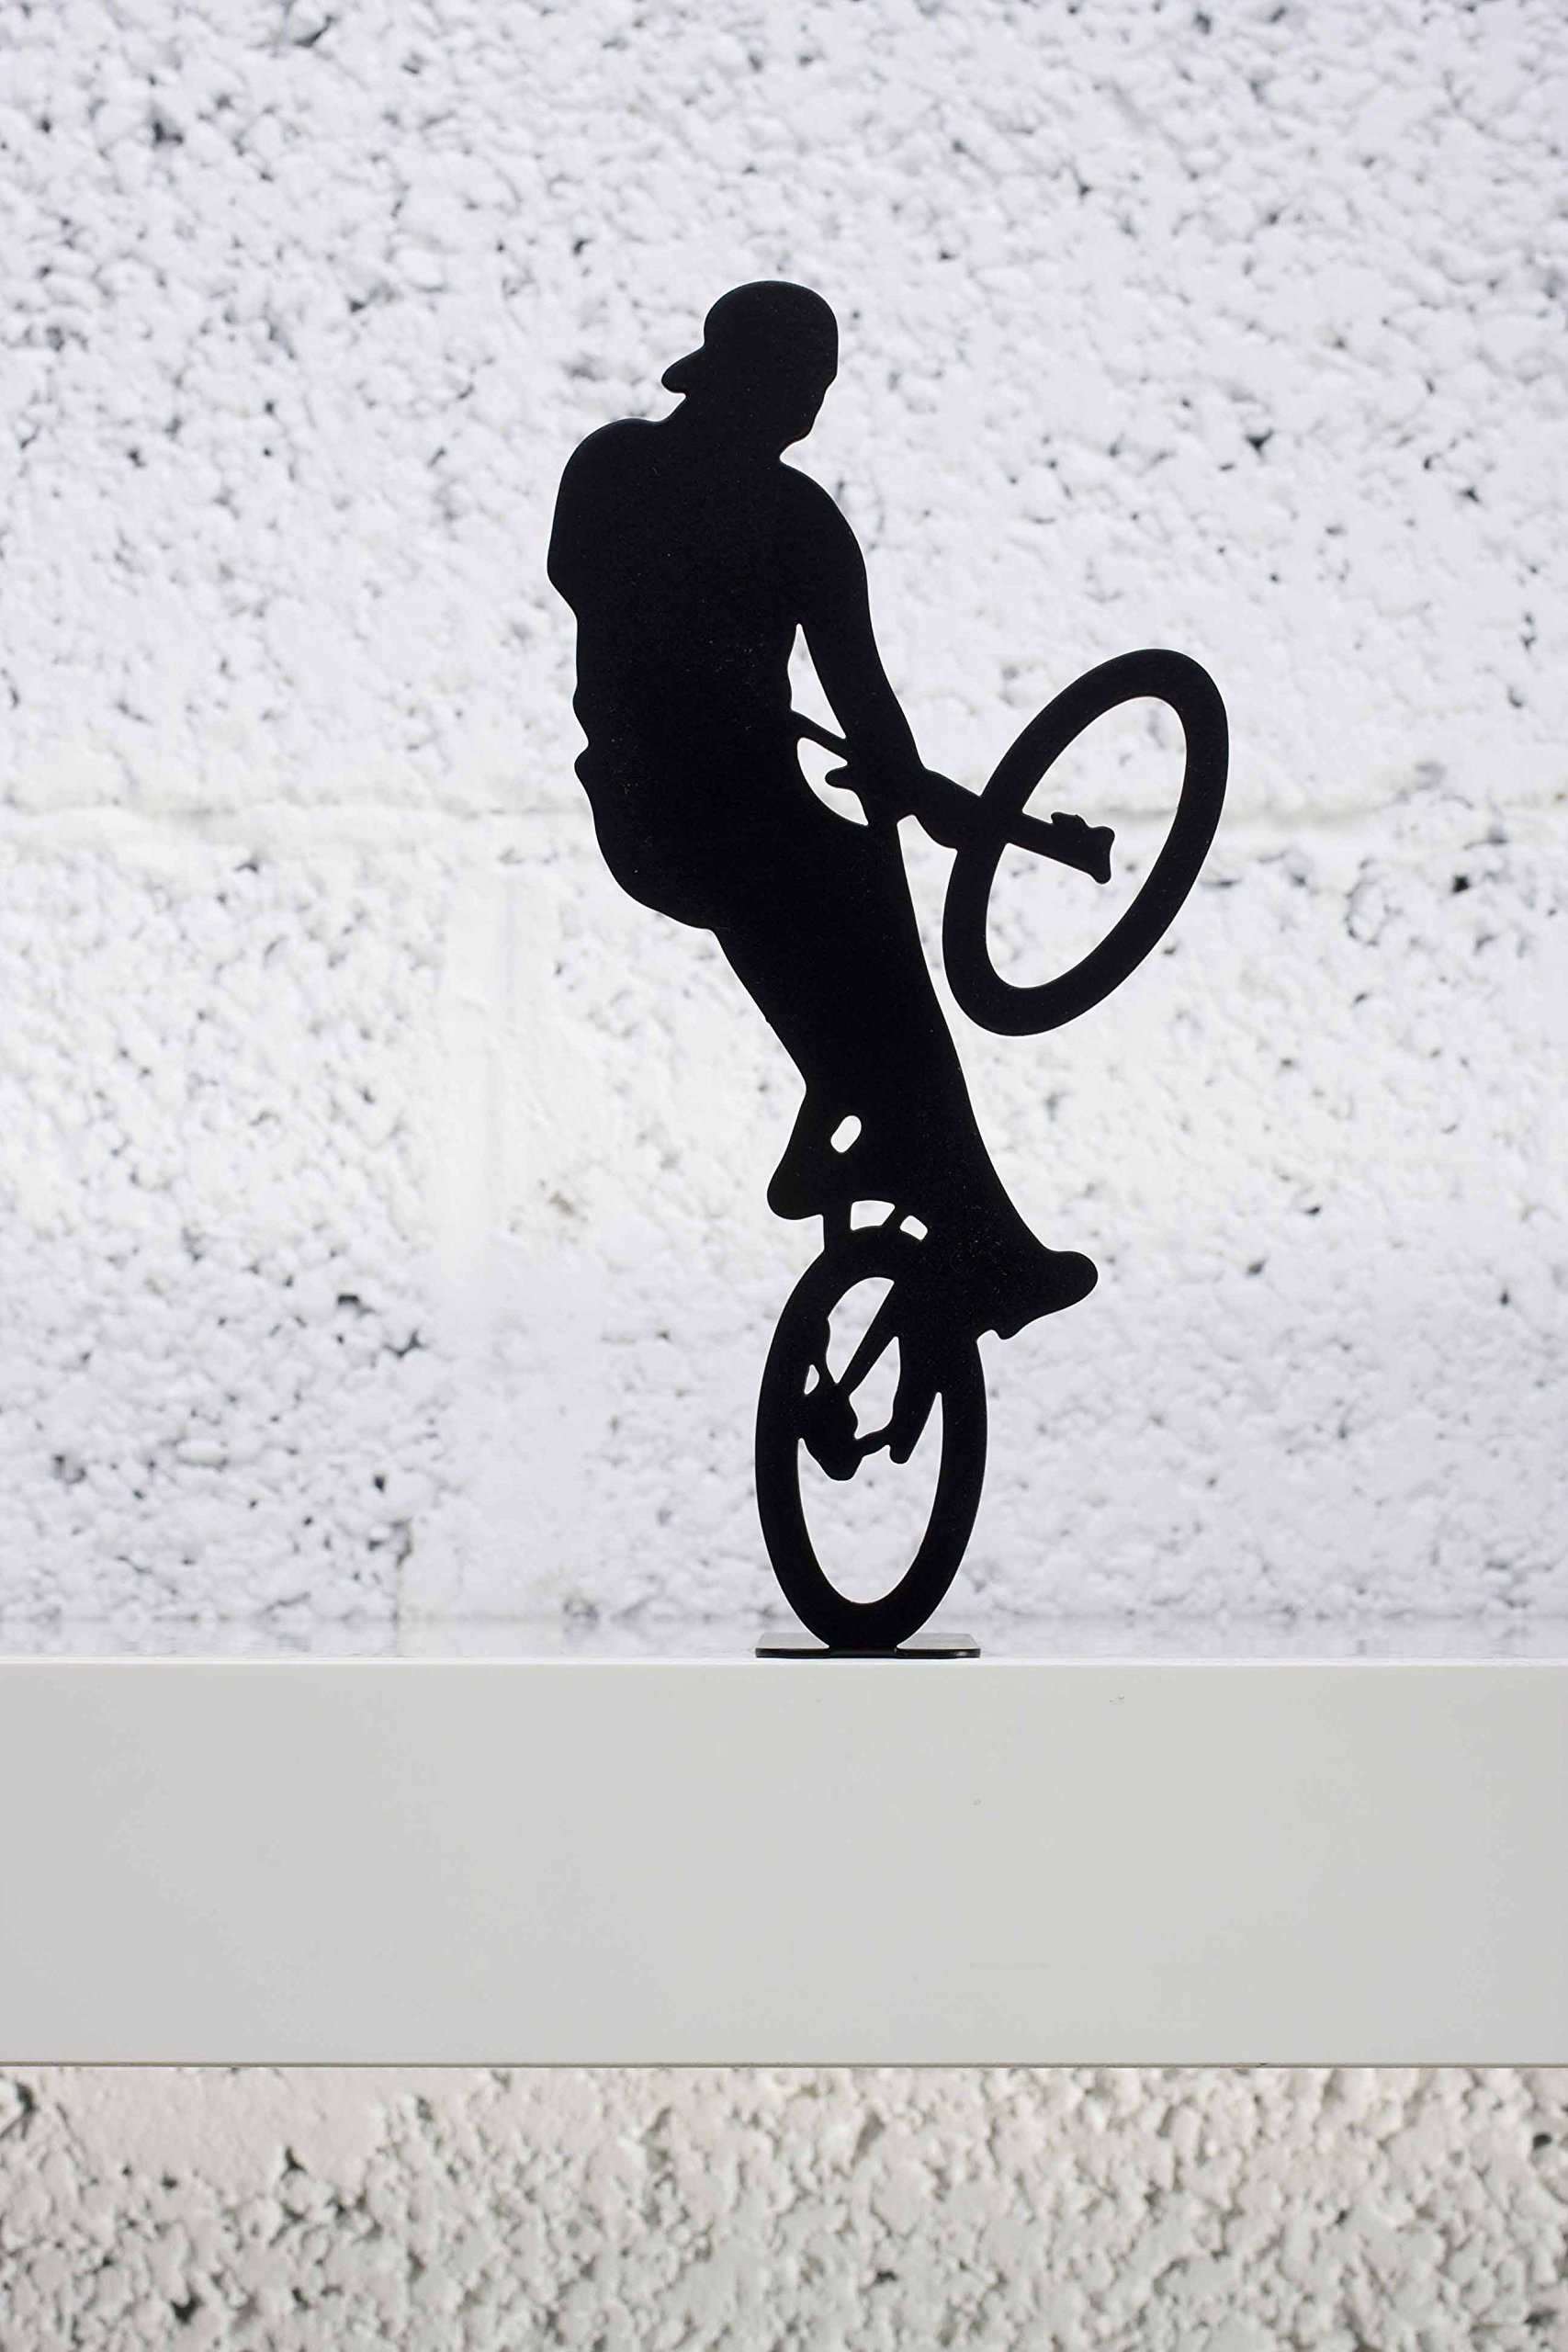 ARTORI Design Extreme Bike Rider Bicyclist Black Metal Figurine Statuette Bicycle Shelf Decoration by ARTORI Design